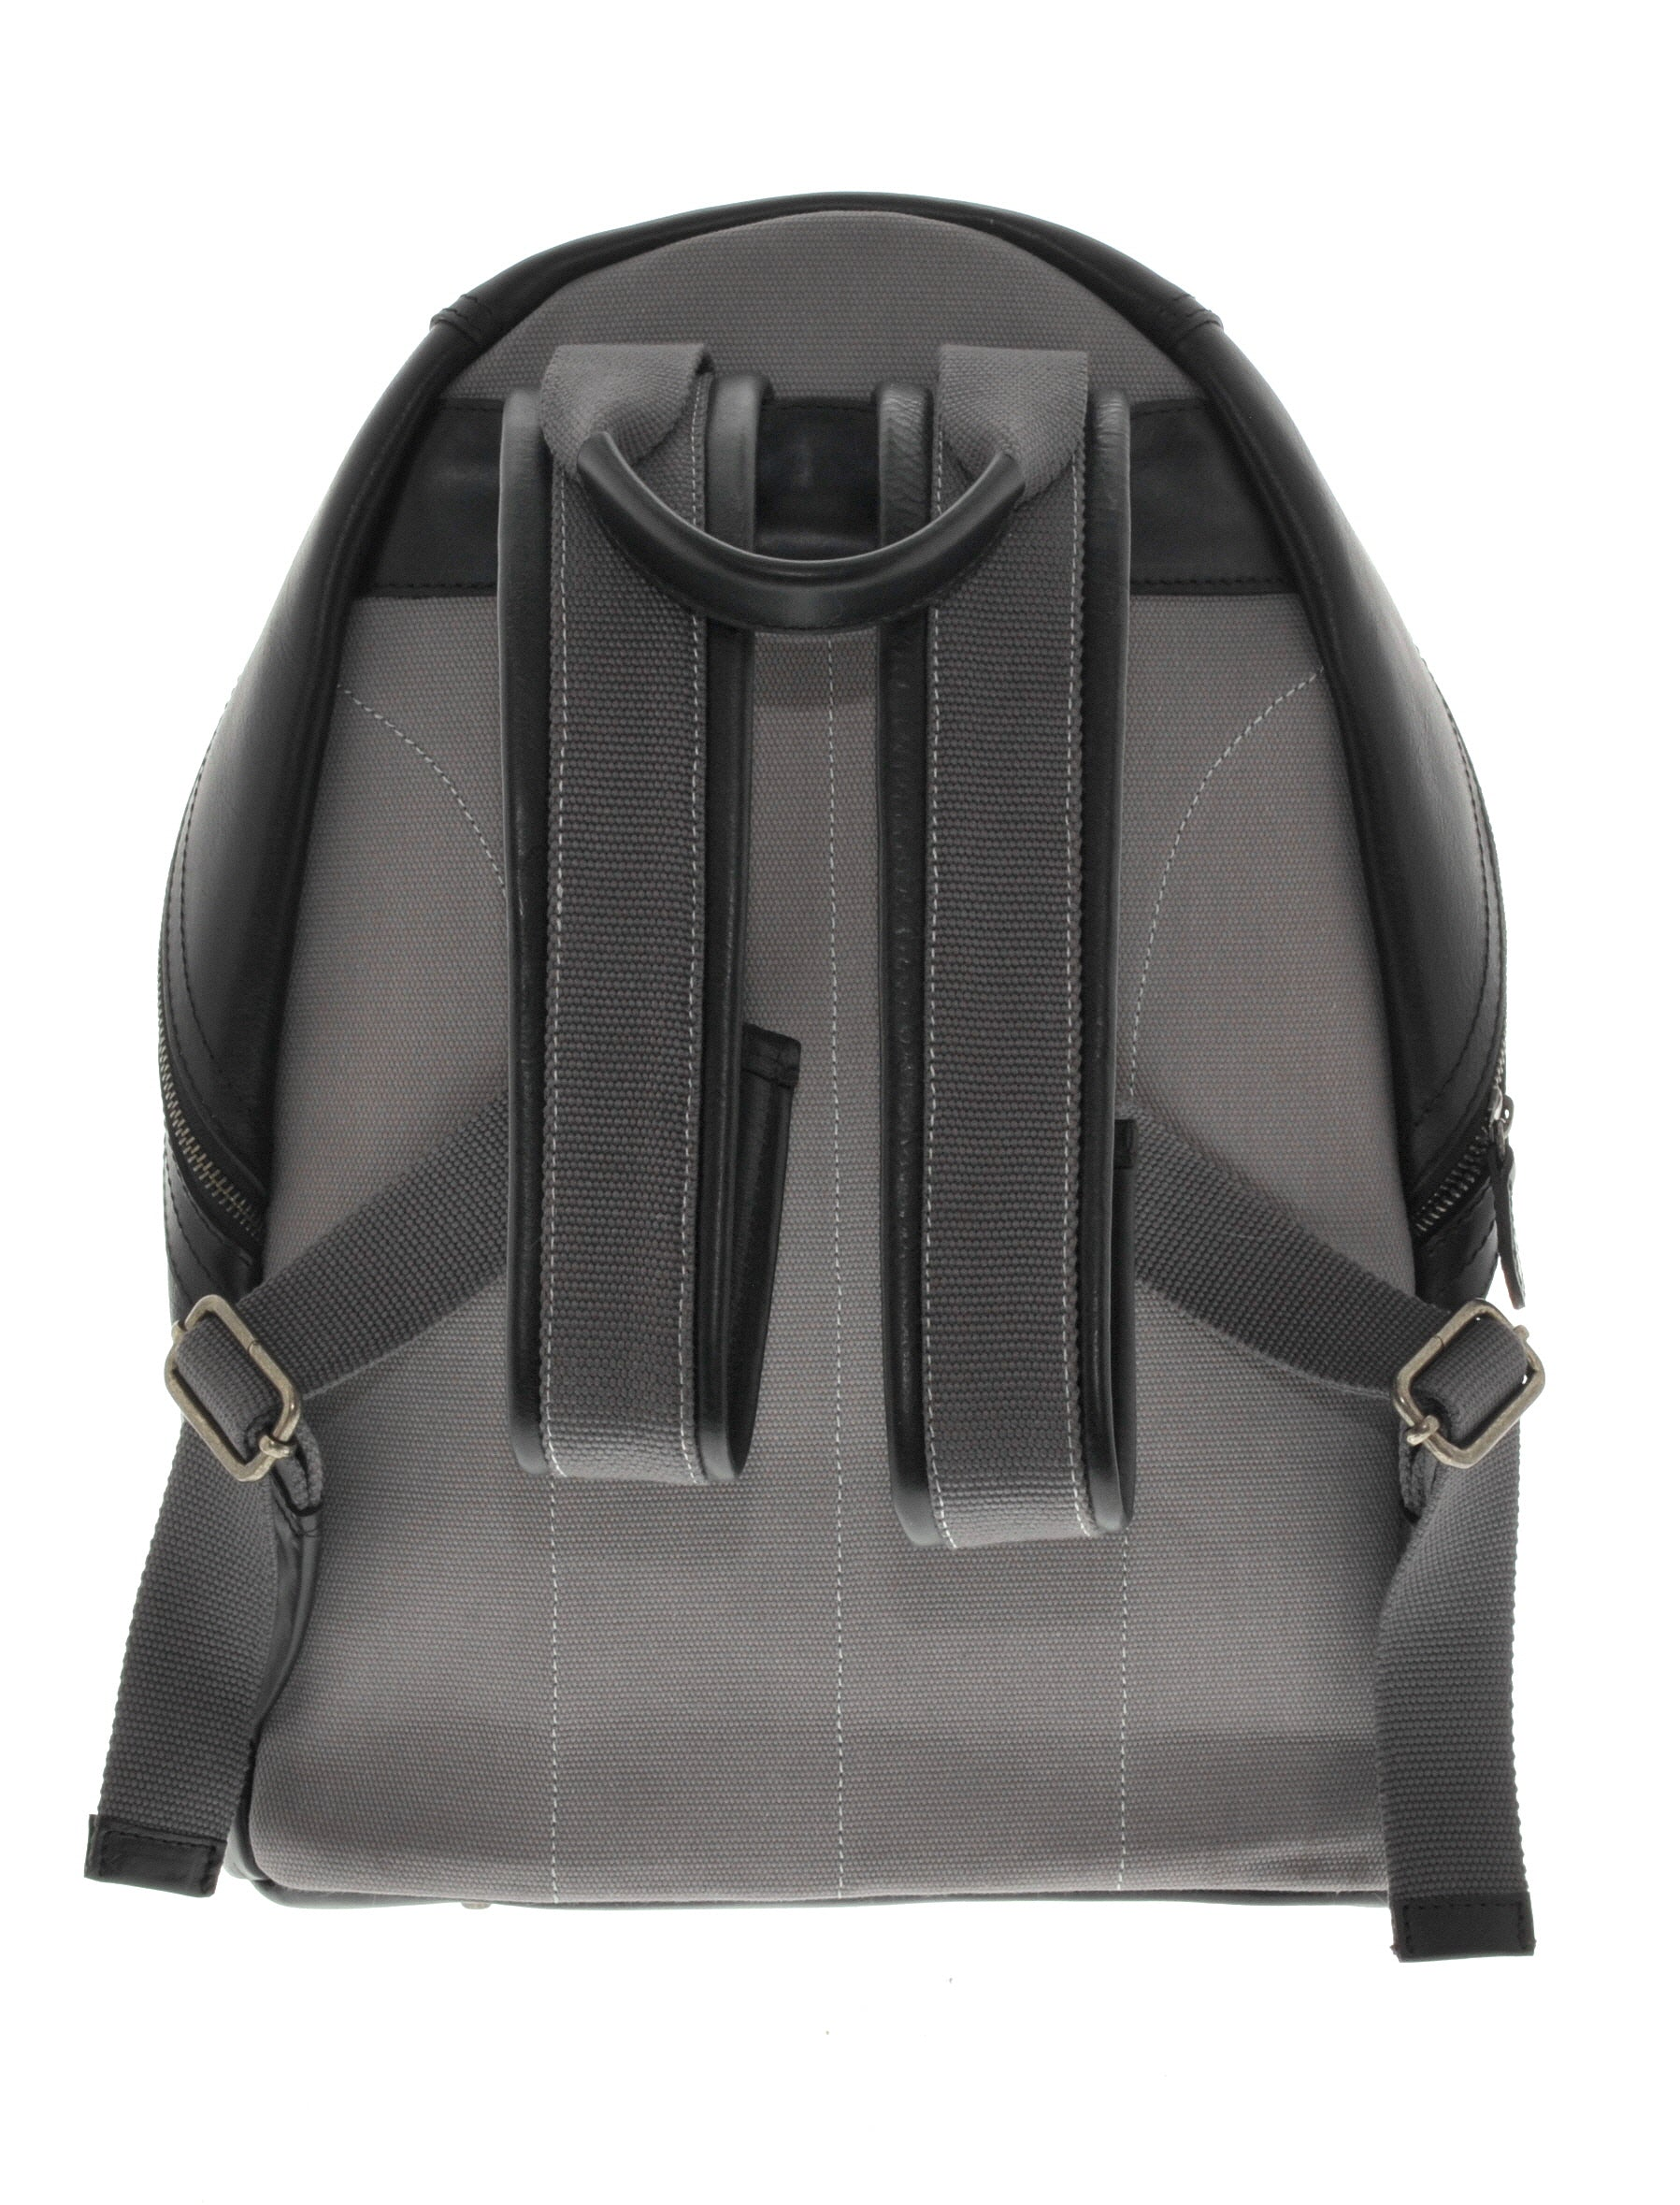 Leather Backpack - Black - LeatherLately